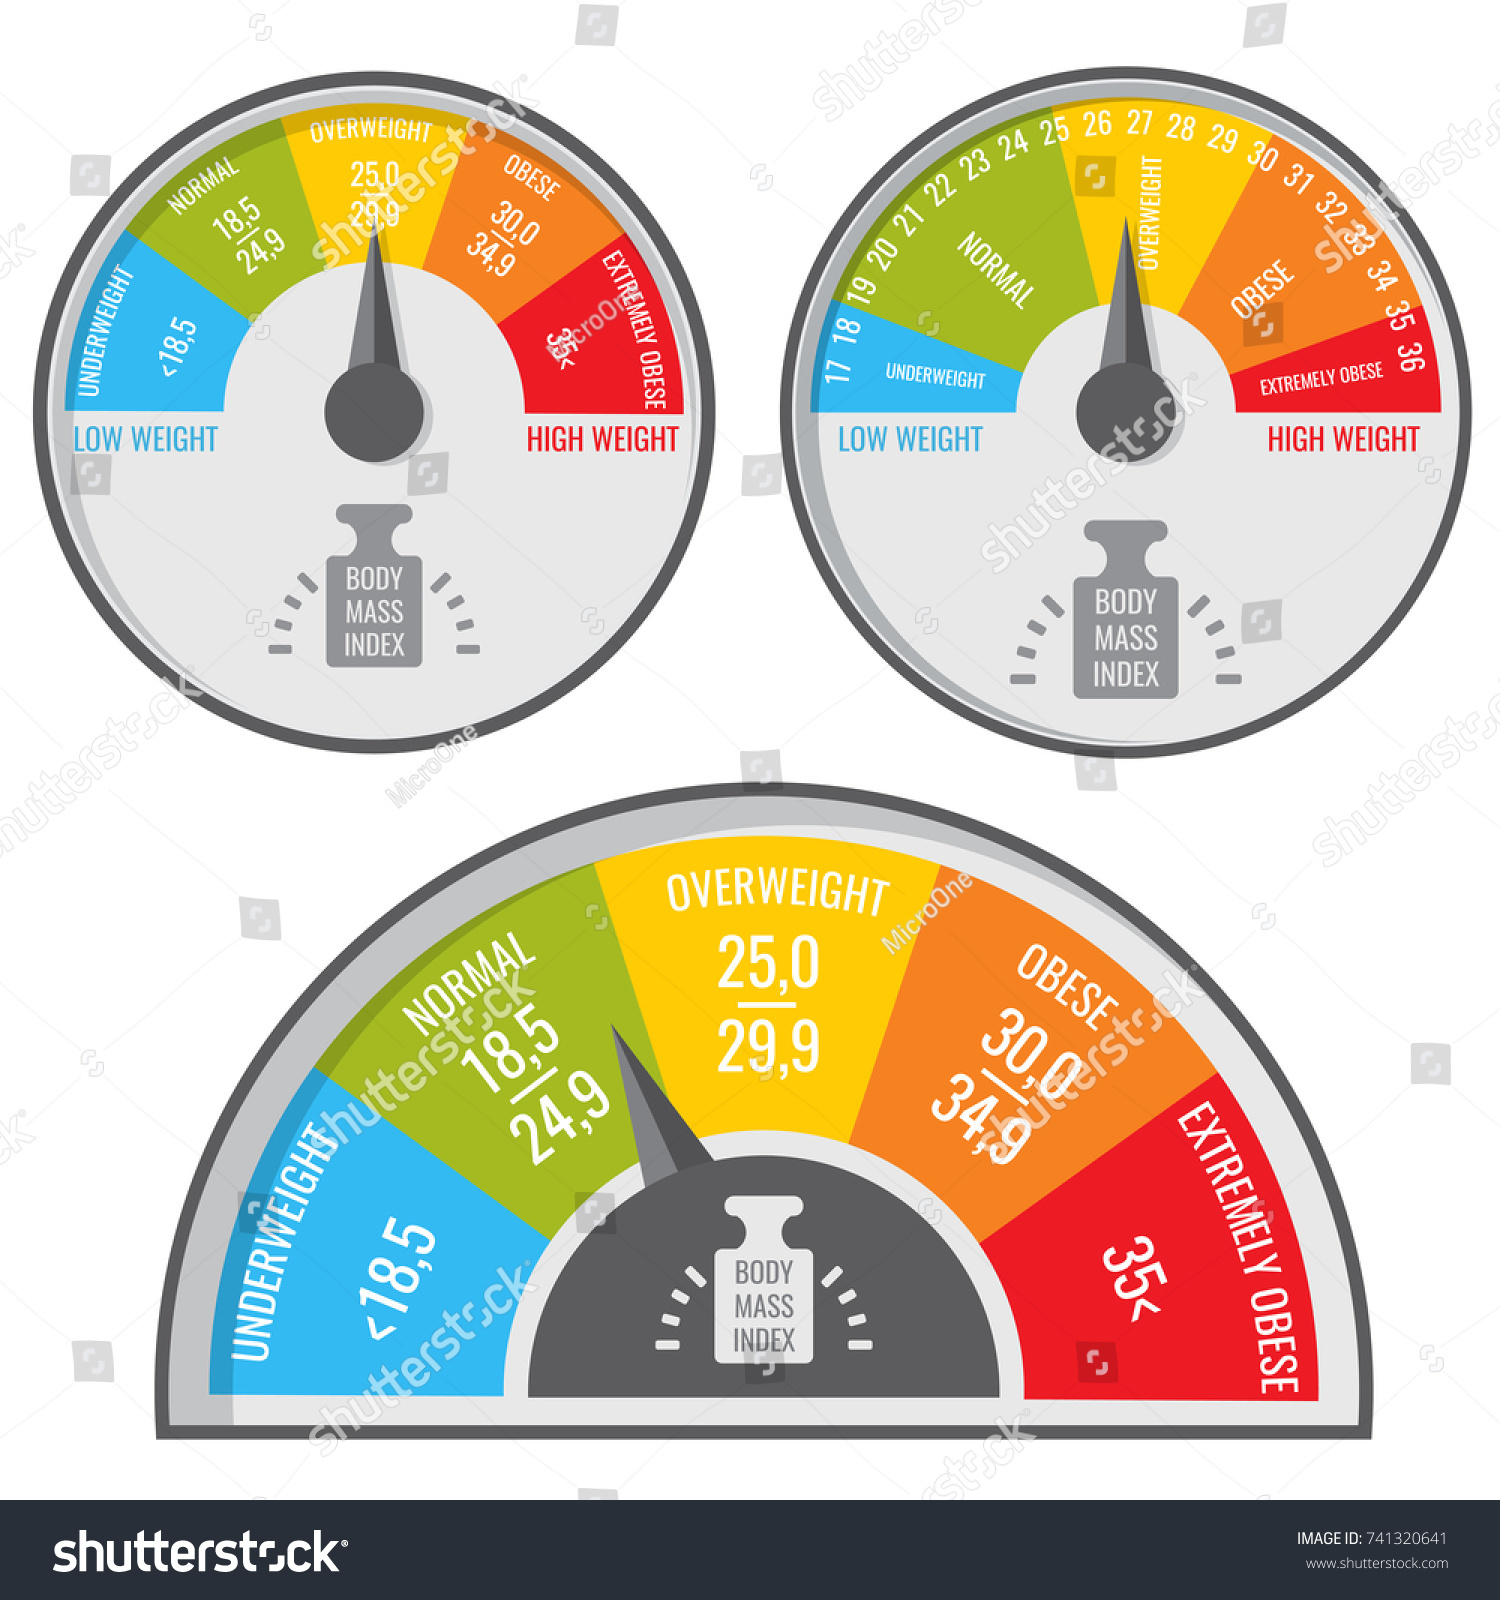 Index body mass bmi medical fitness stock vector 741320641 index body mass bmi medical and fitness chart vector weight indicator body weight nvjuhfo Images